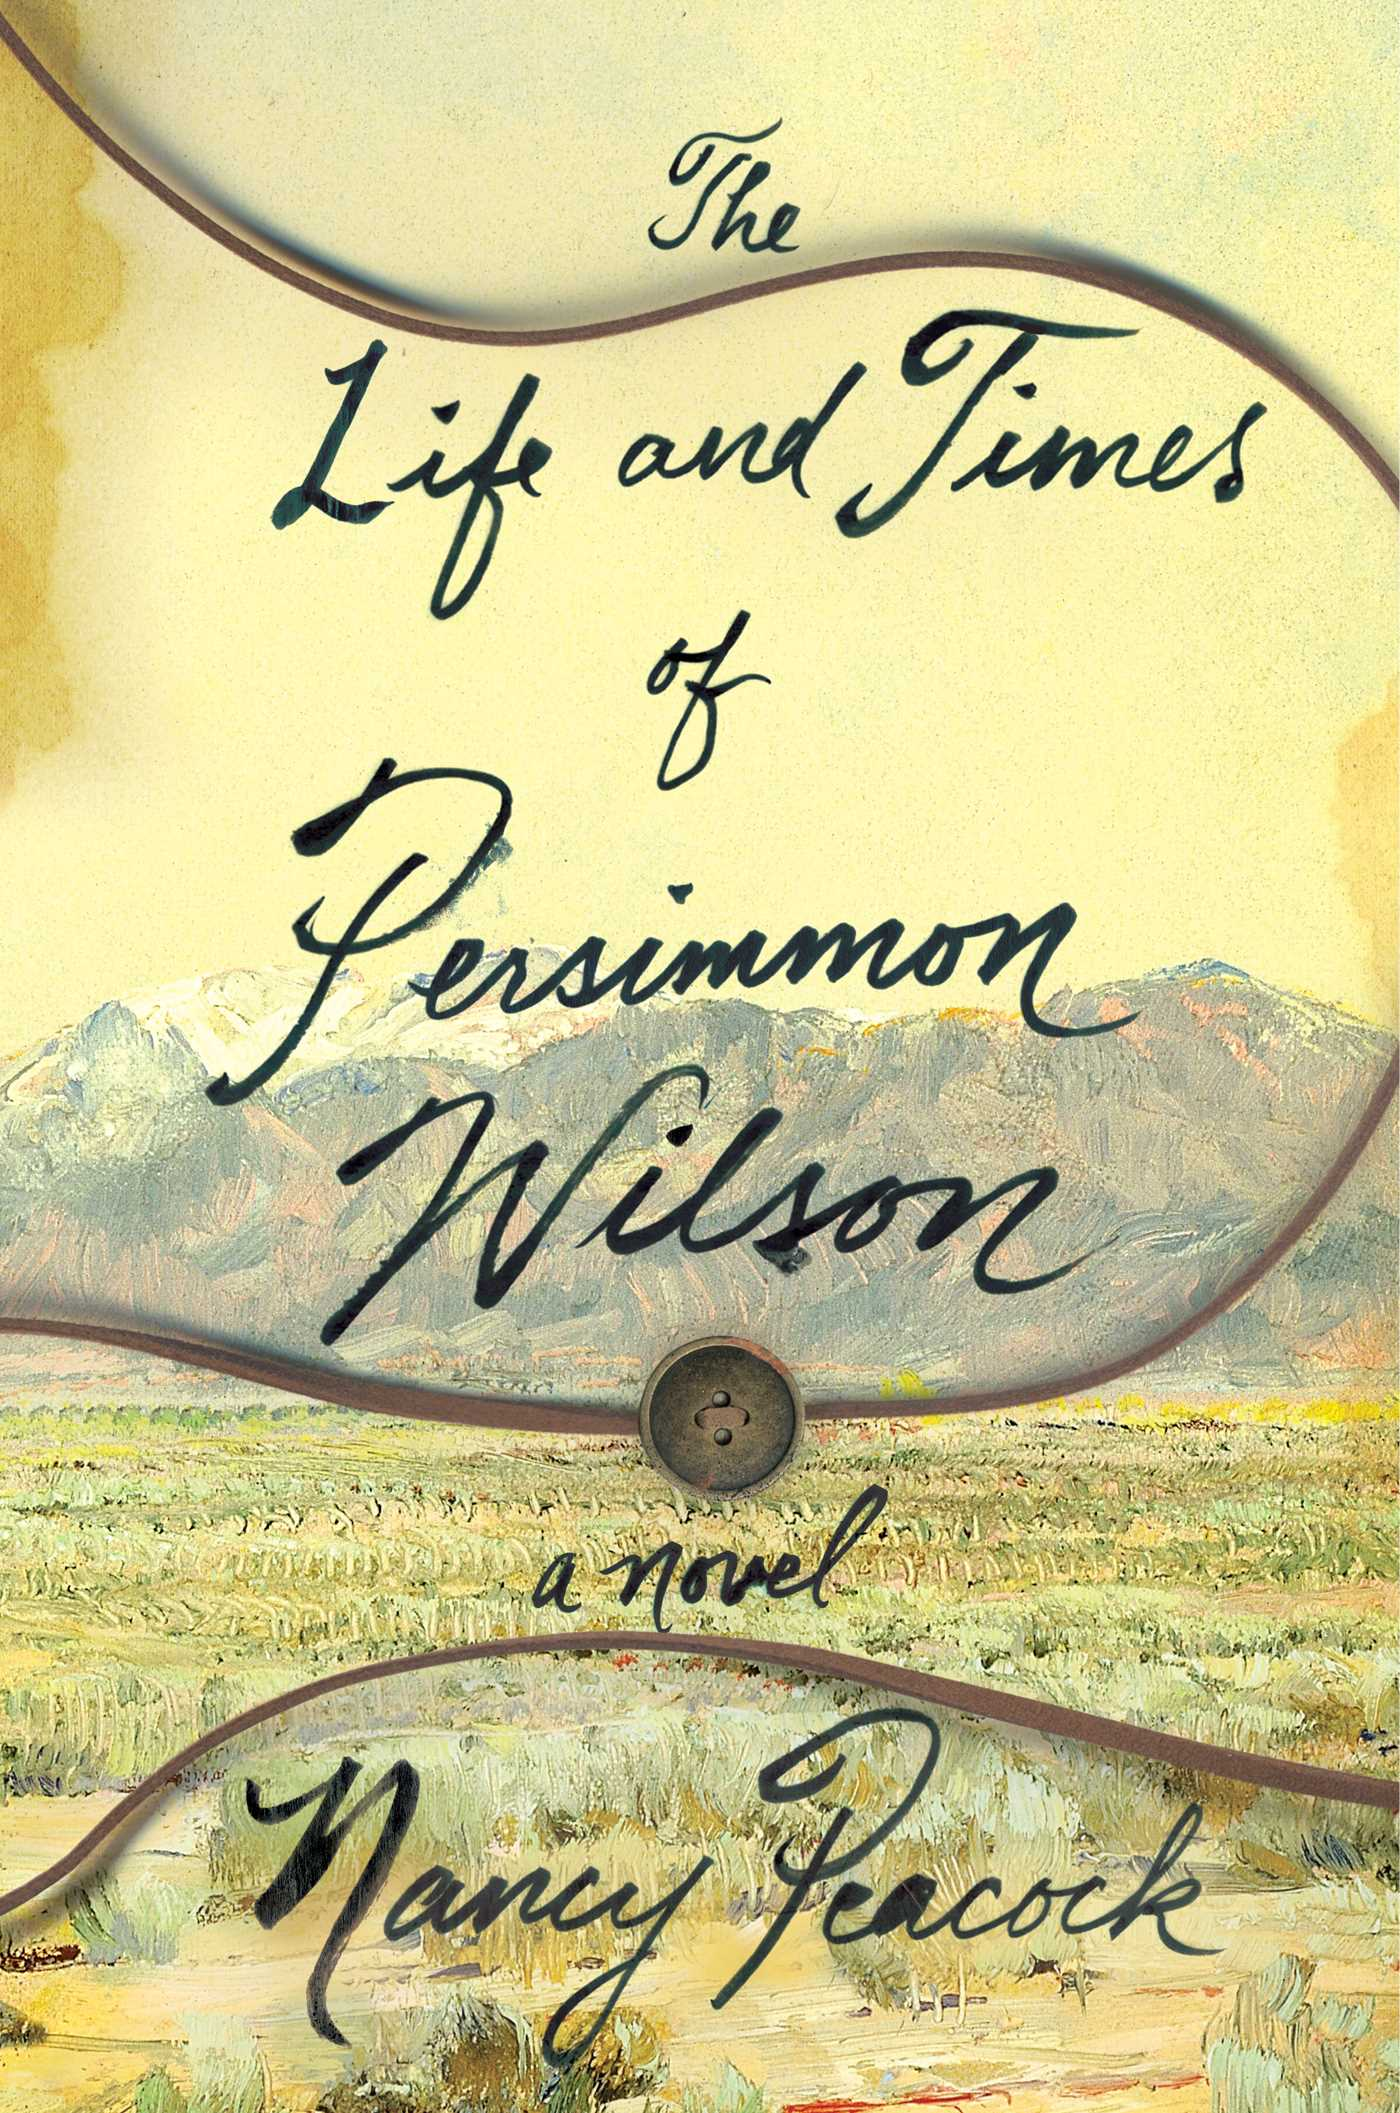 Image result for the life and times of persimmon wilson